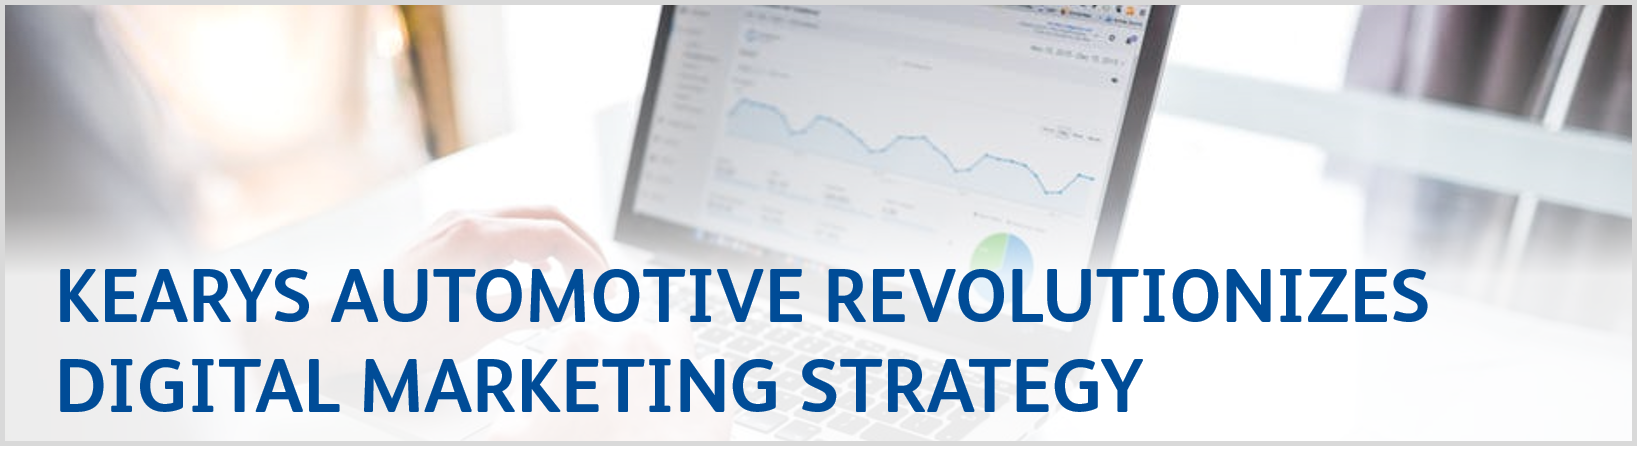 Kearys Automotive Revolutionizes Digital Marketing Strategy